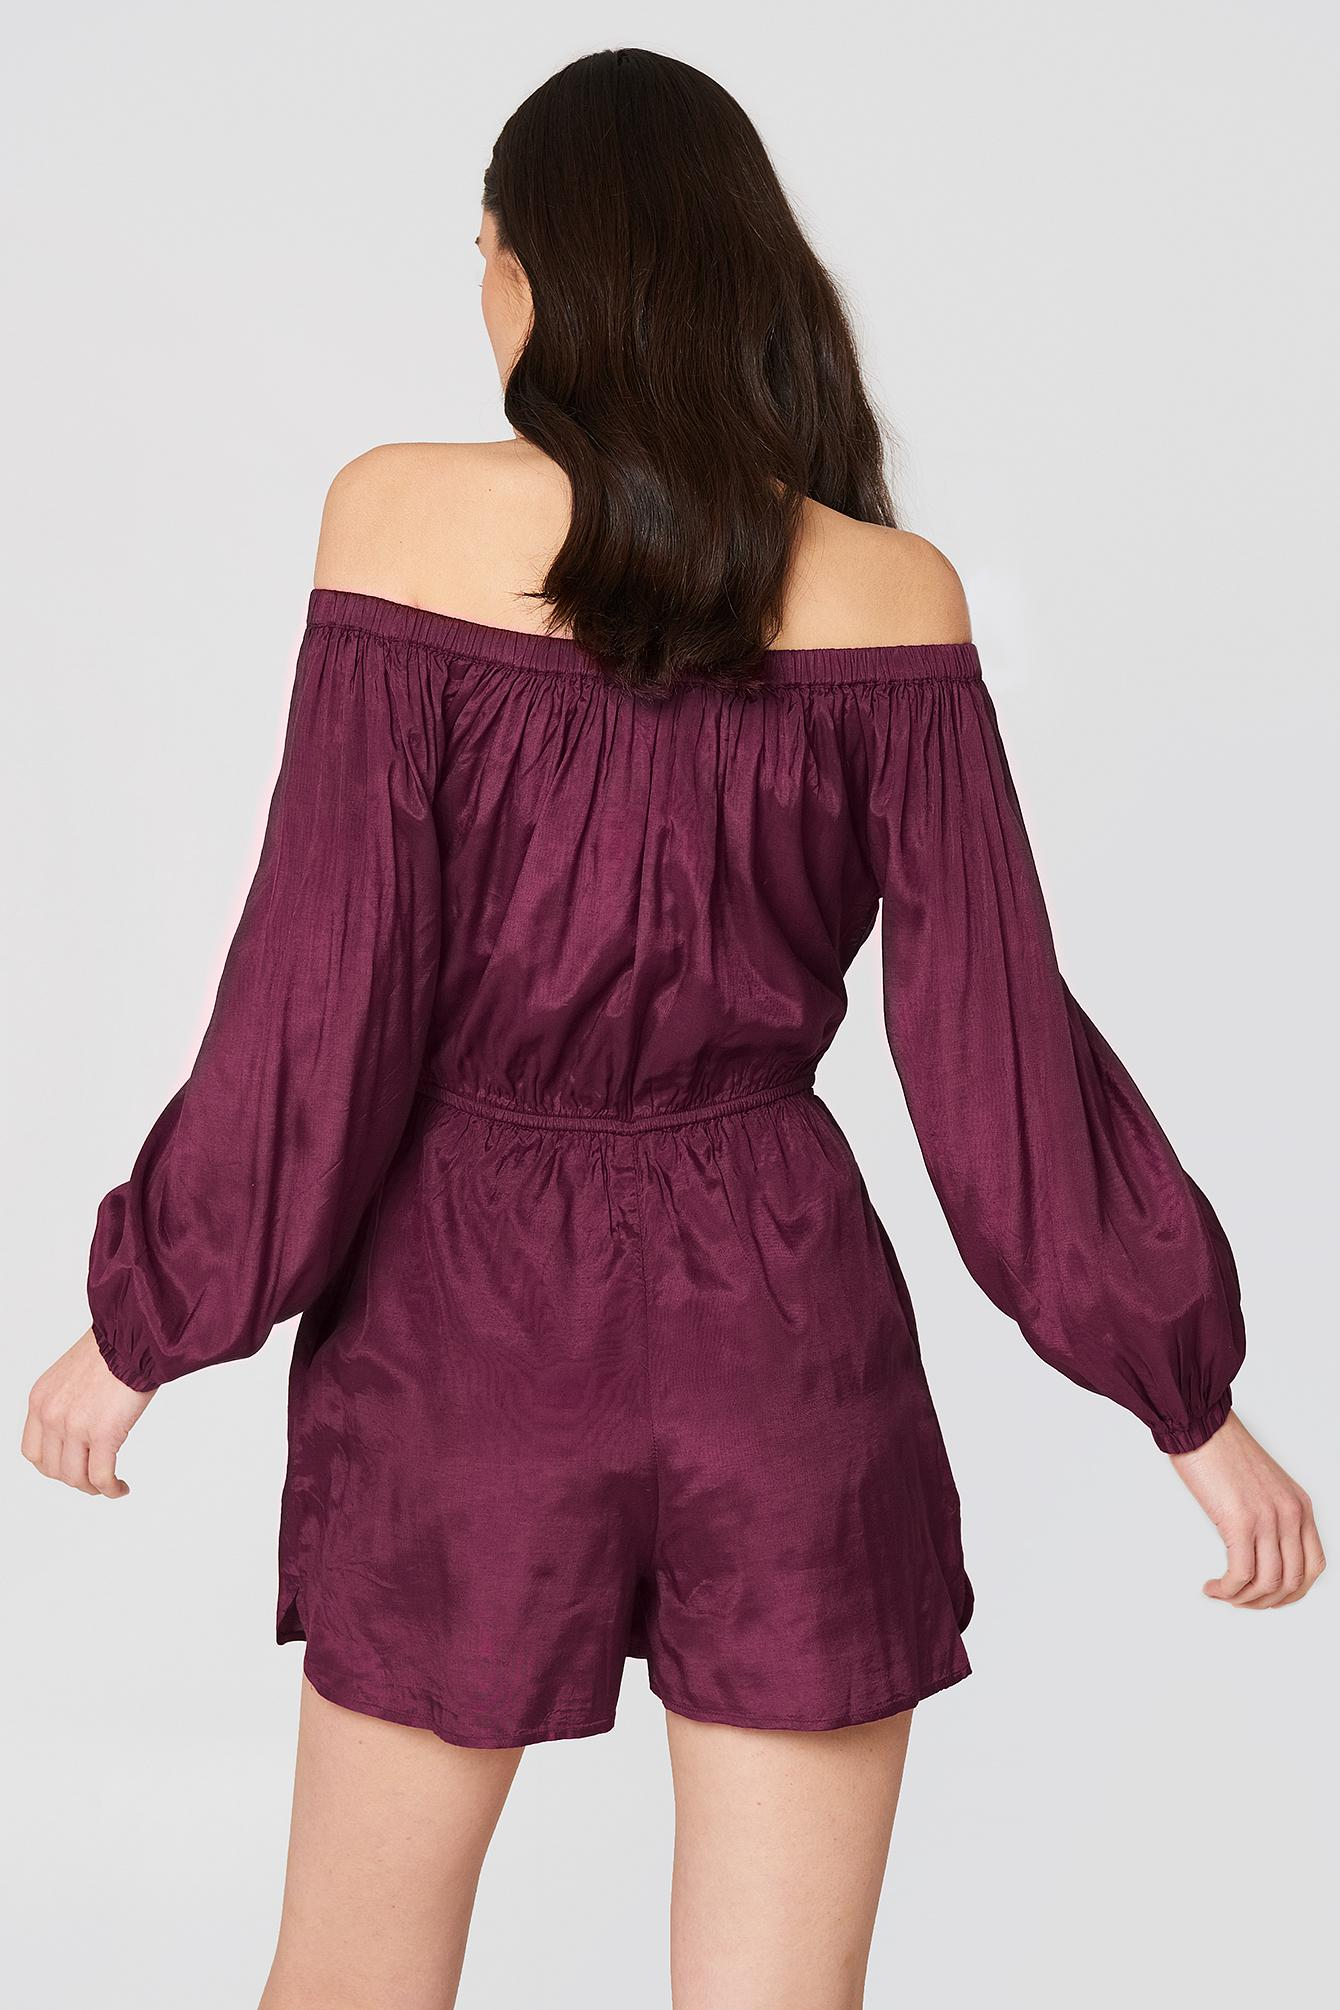 5f387a740b377f NA-KD - Purple Off Shoulder Balloon Sleeve Playsuit Burgundy - Lyst. View  fullscreen